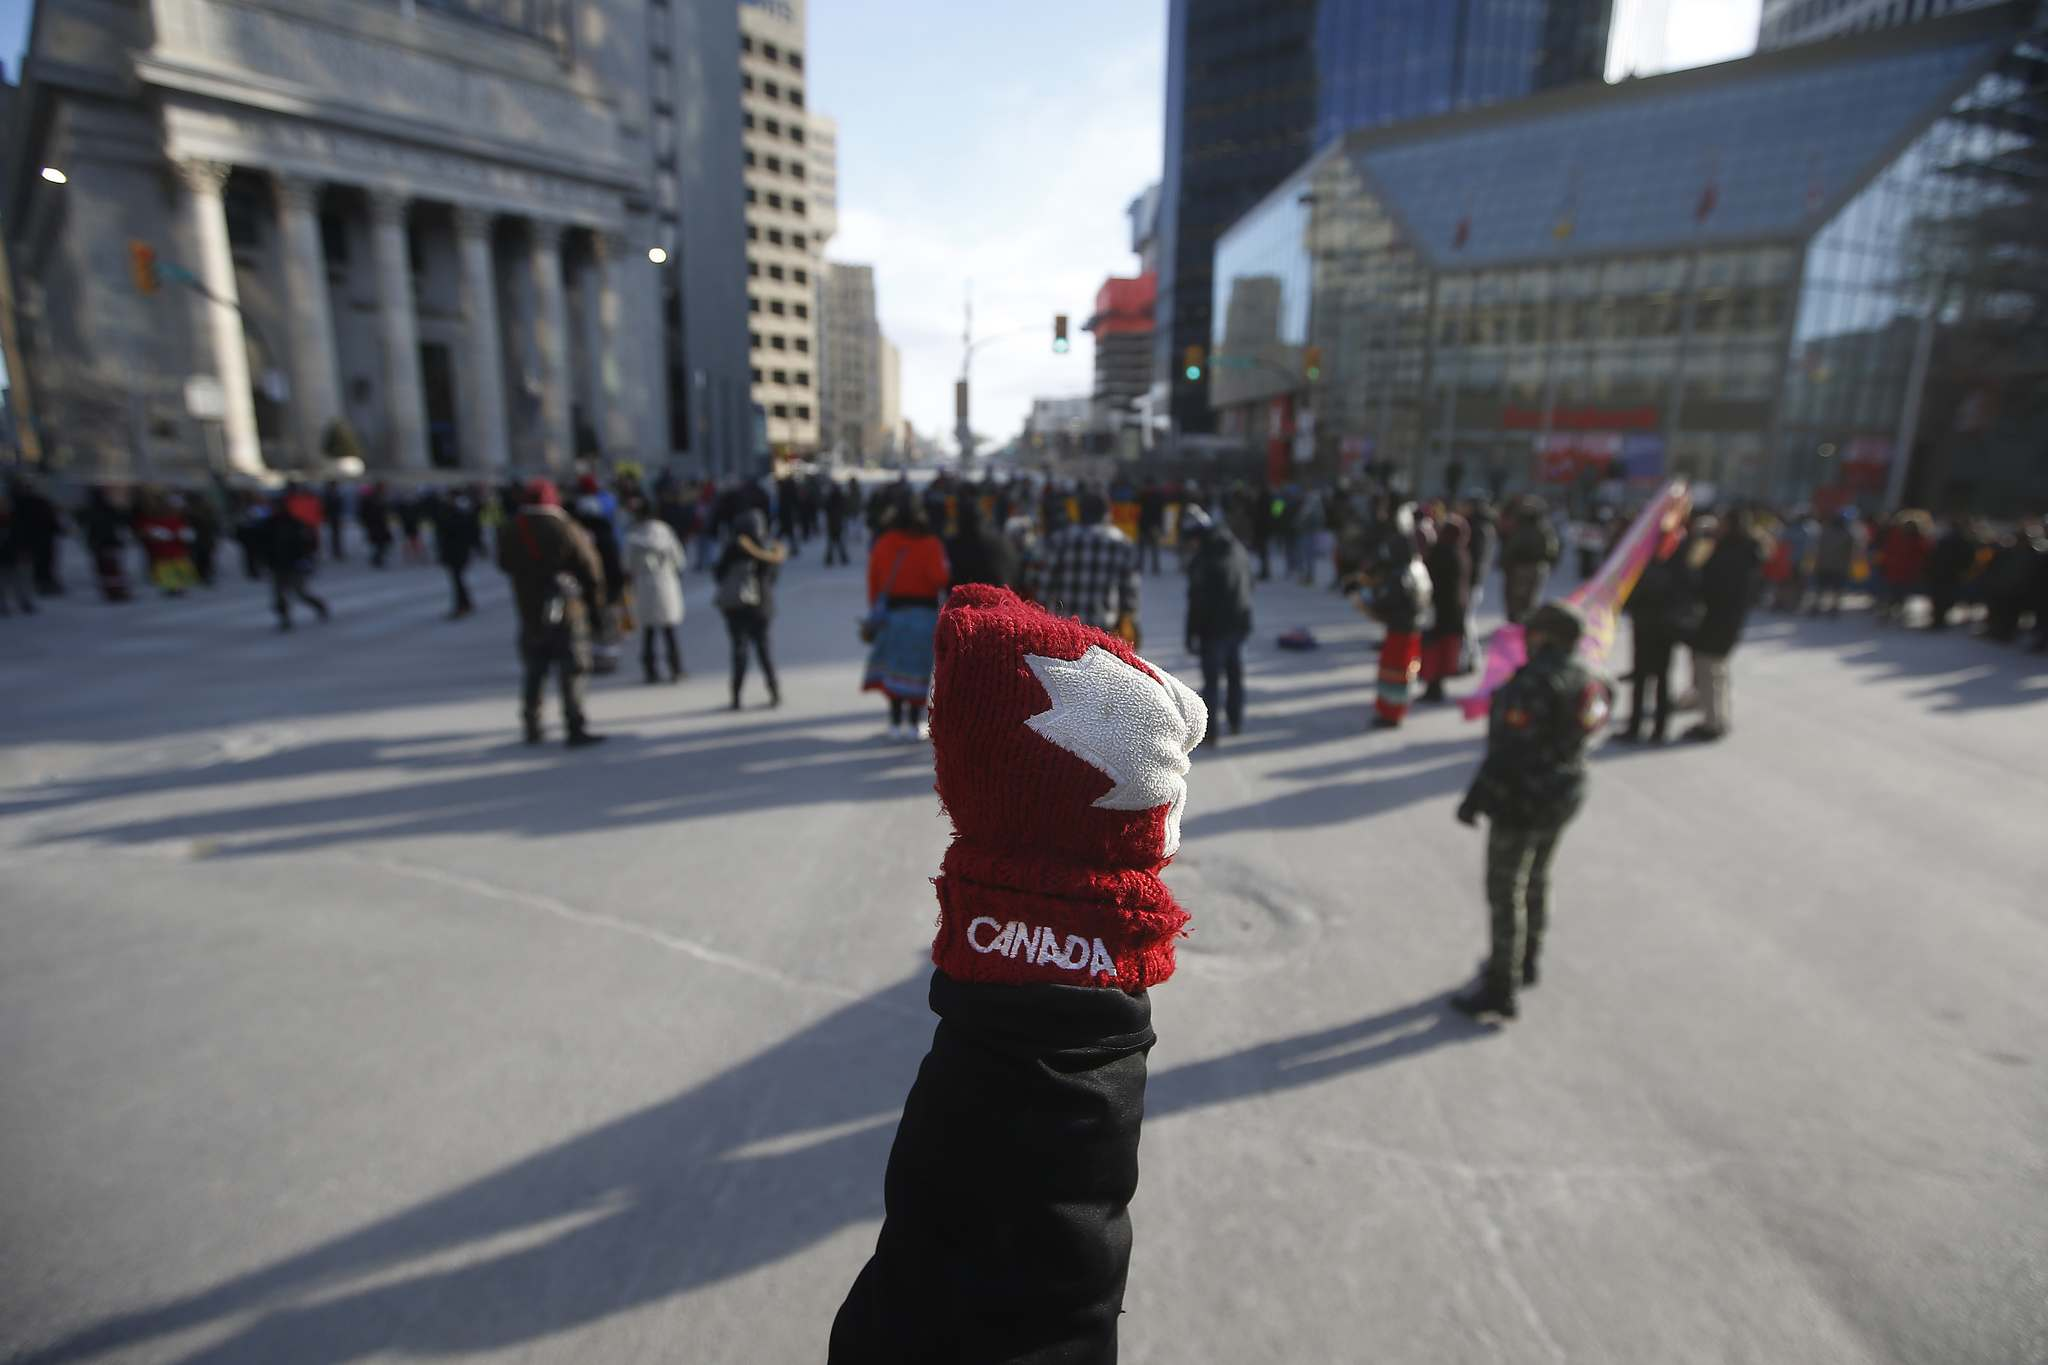 <p>Protesters in support of Wet'suwet'en blockades close Portage and Main to traffic in Winnipeg Wednesday.</p>